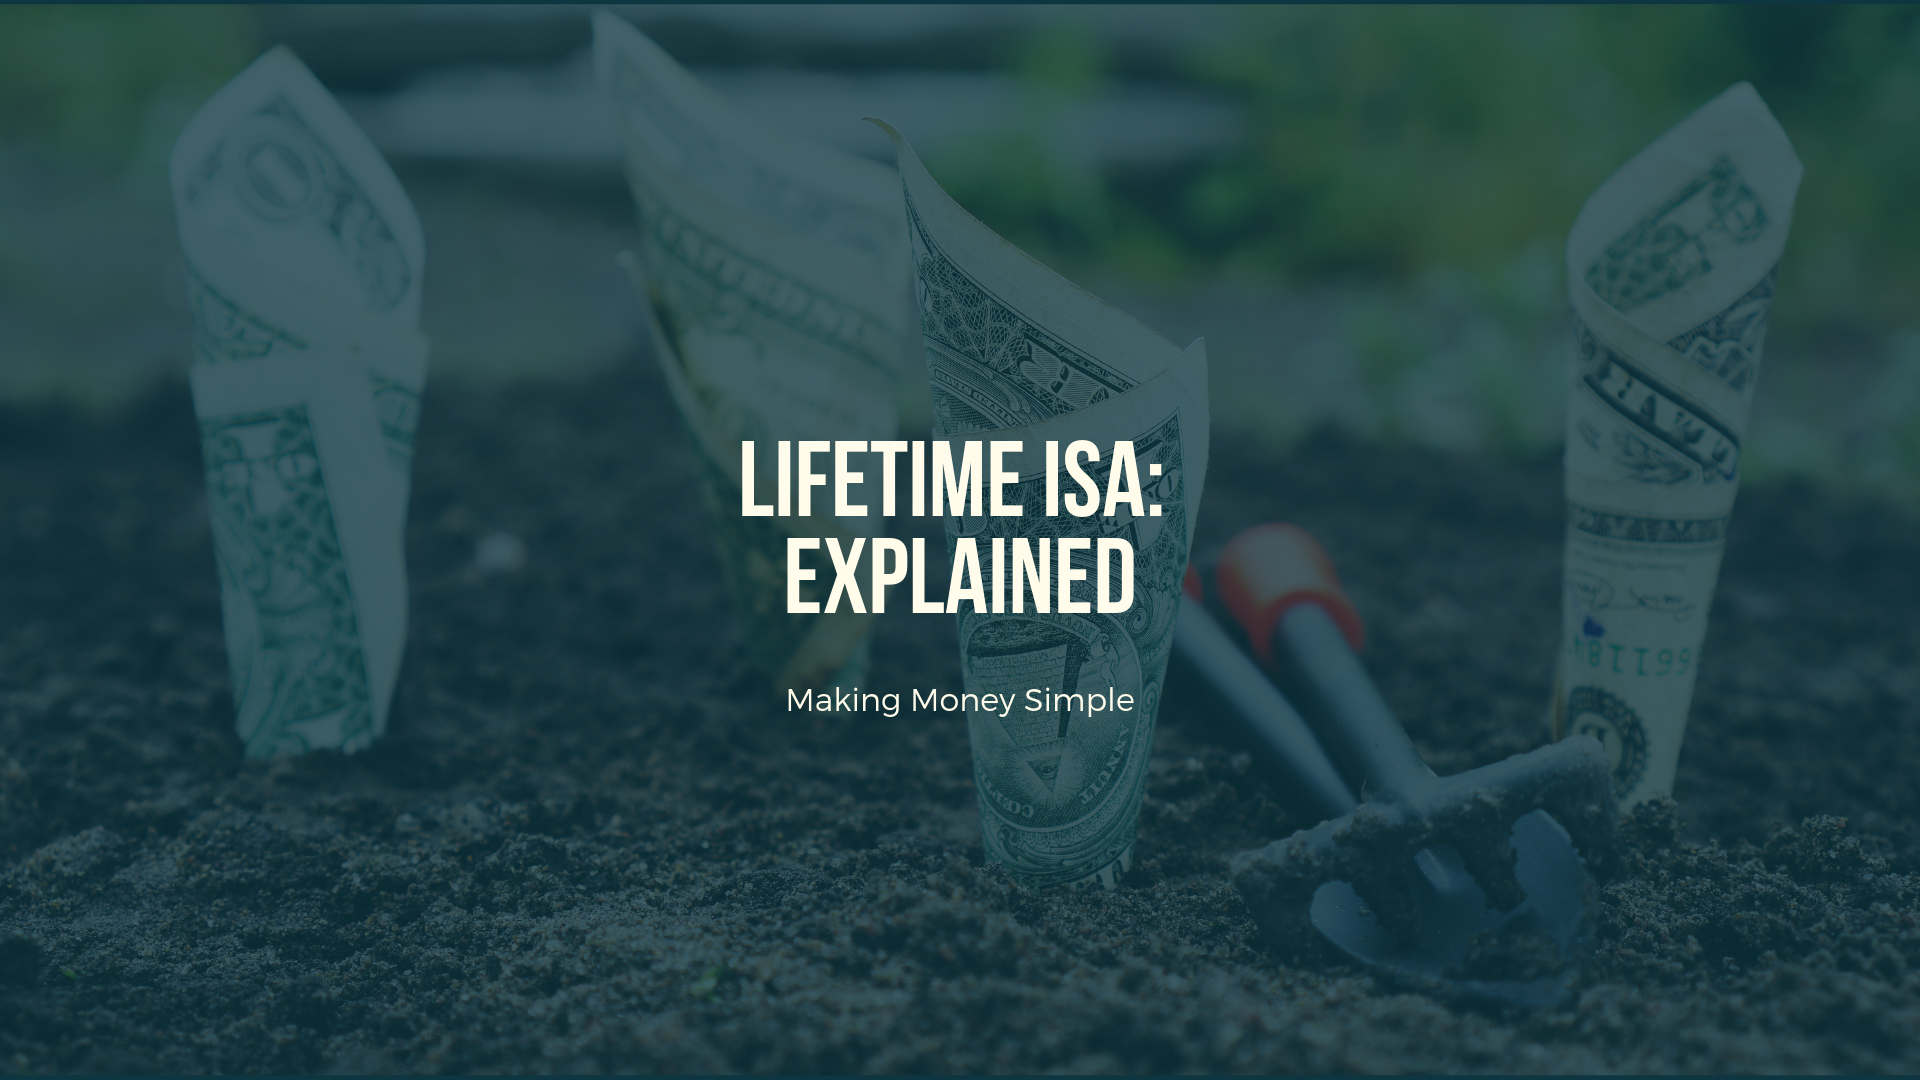 Lifetime ISA: Explained